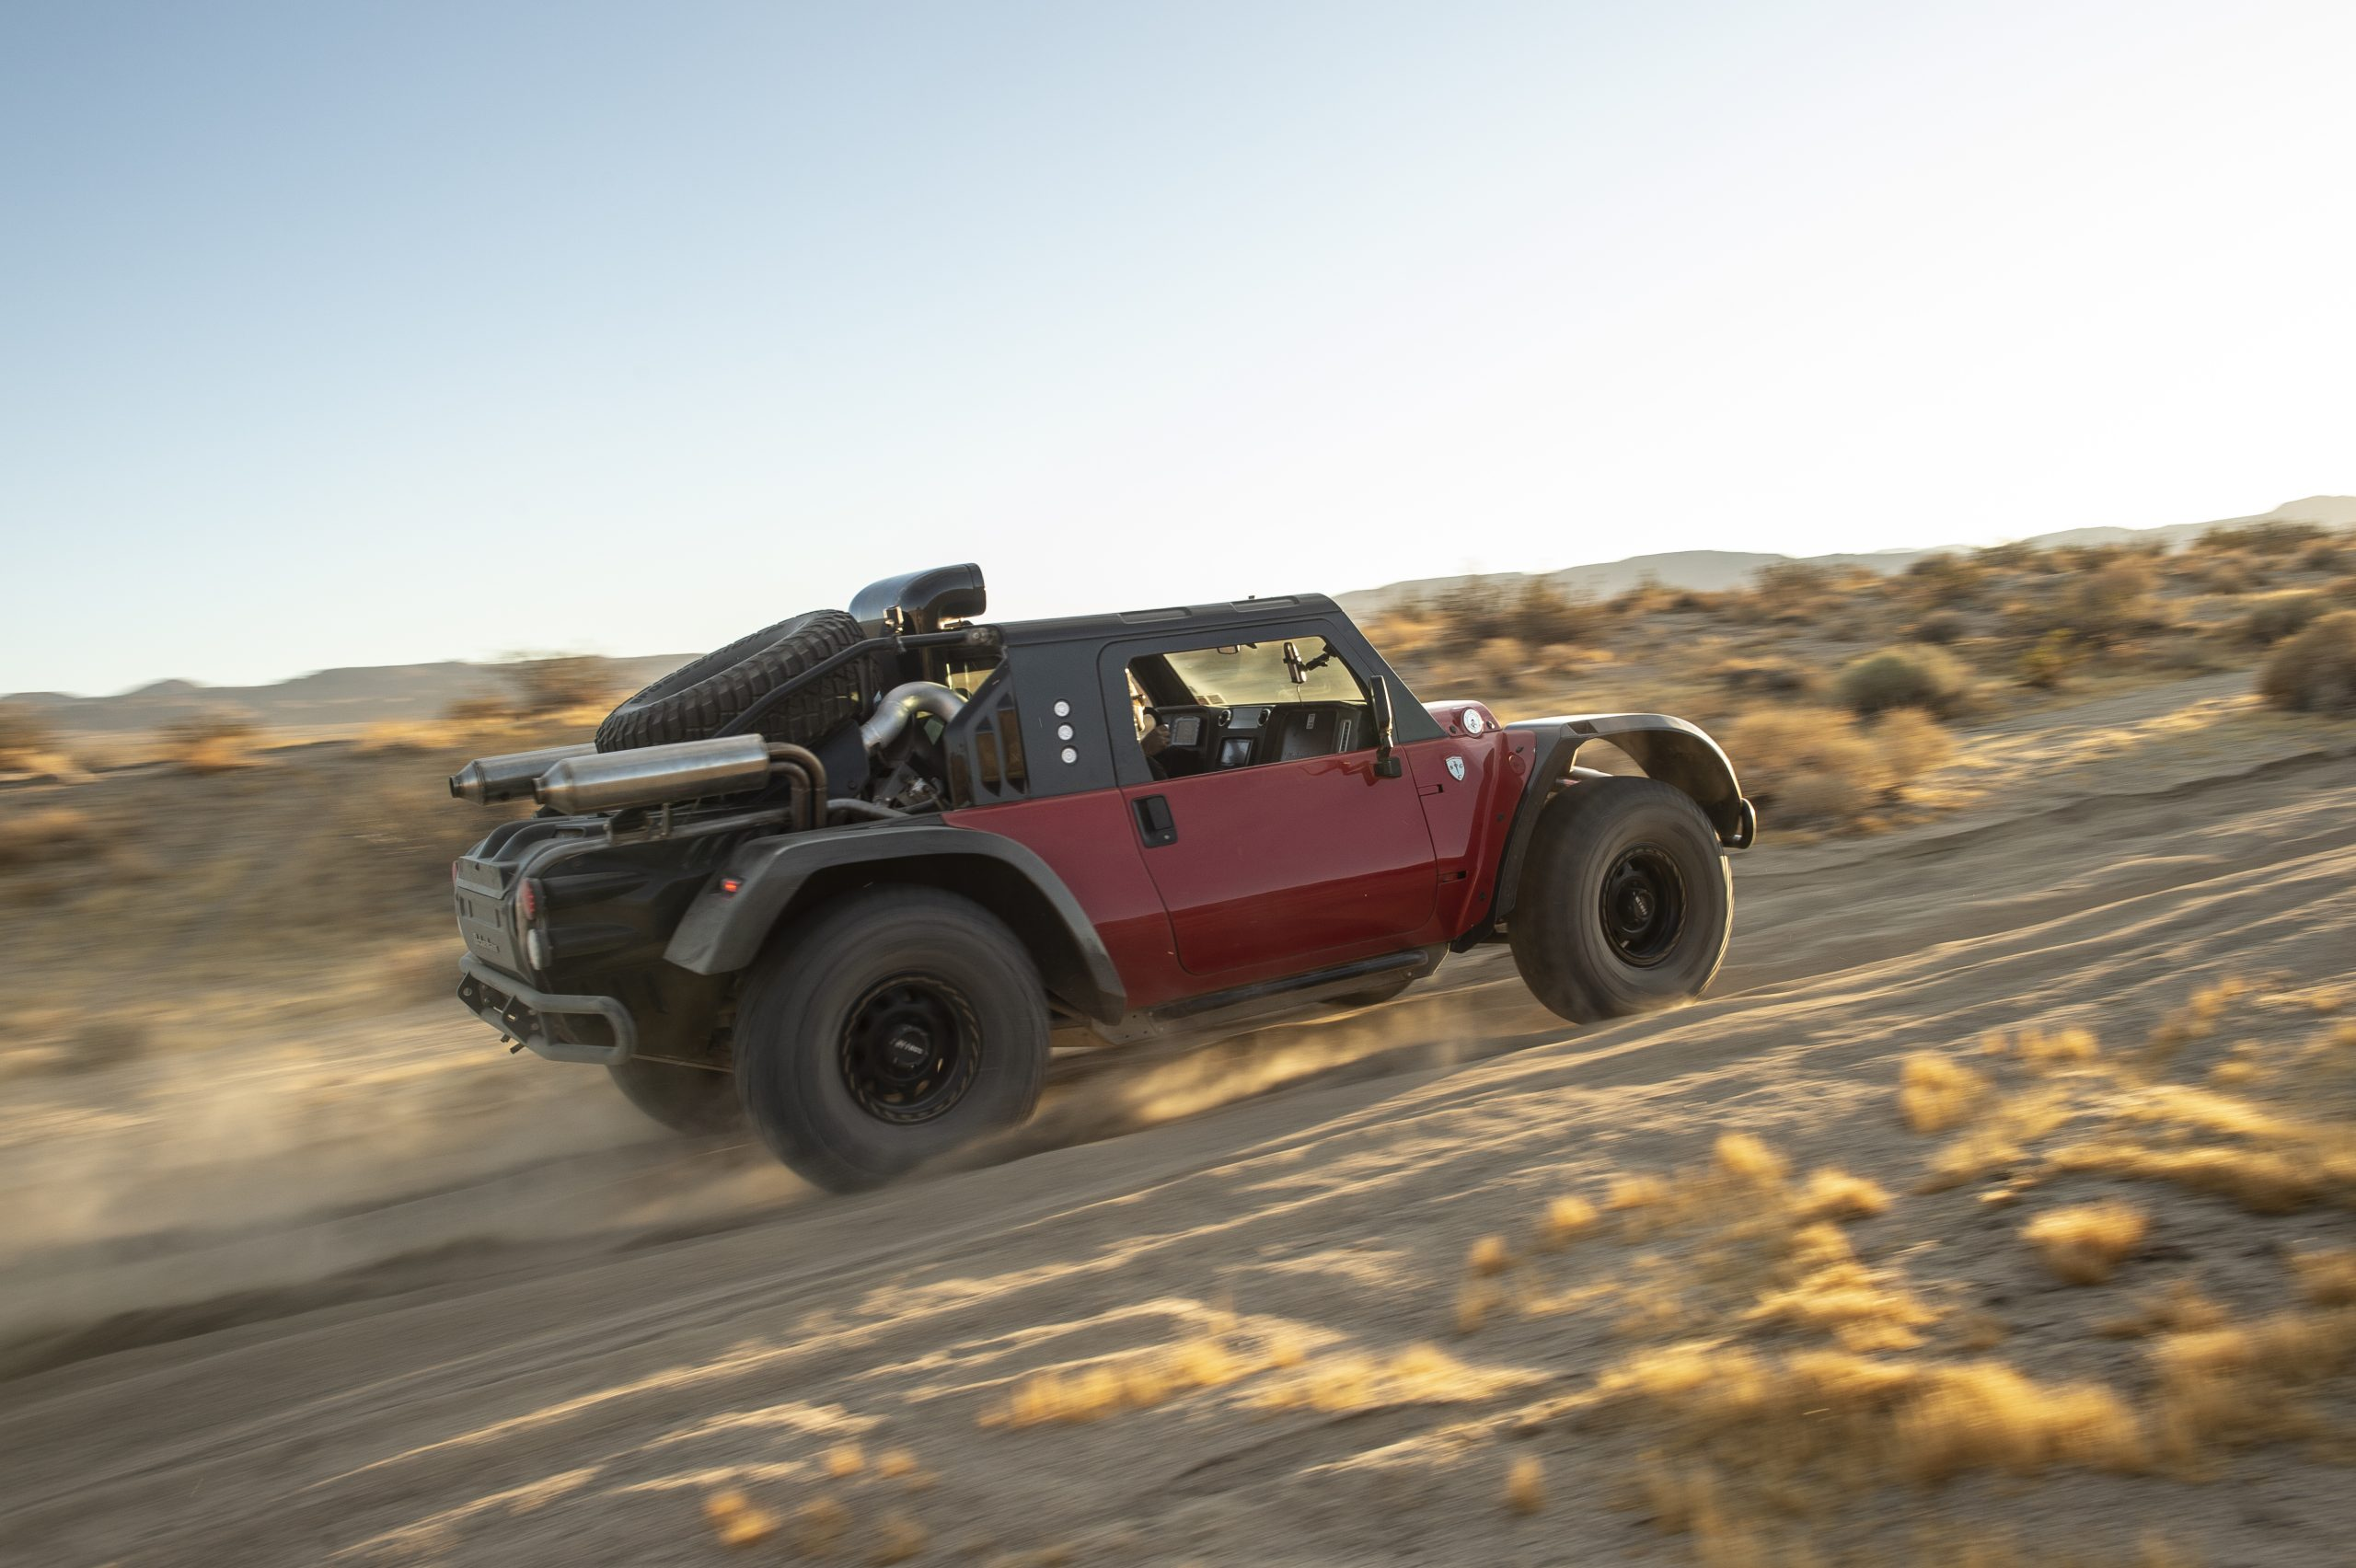 SCG Boot claims back-to-back class wins at Baja, besting the Bronco R